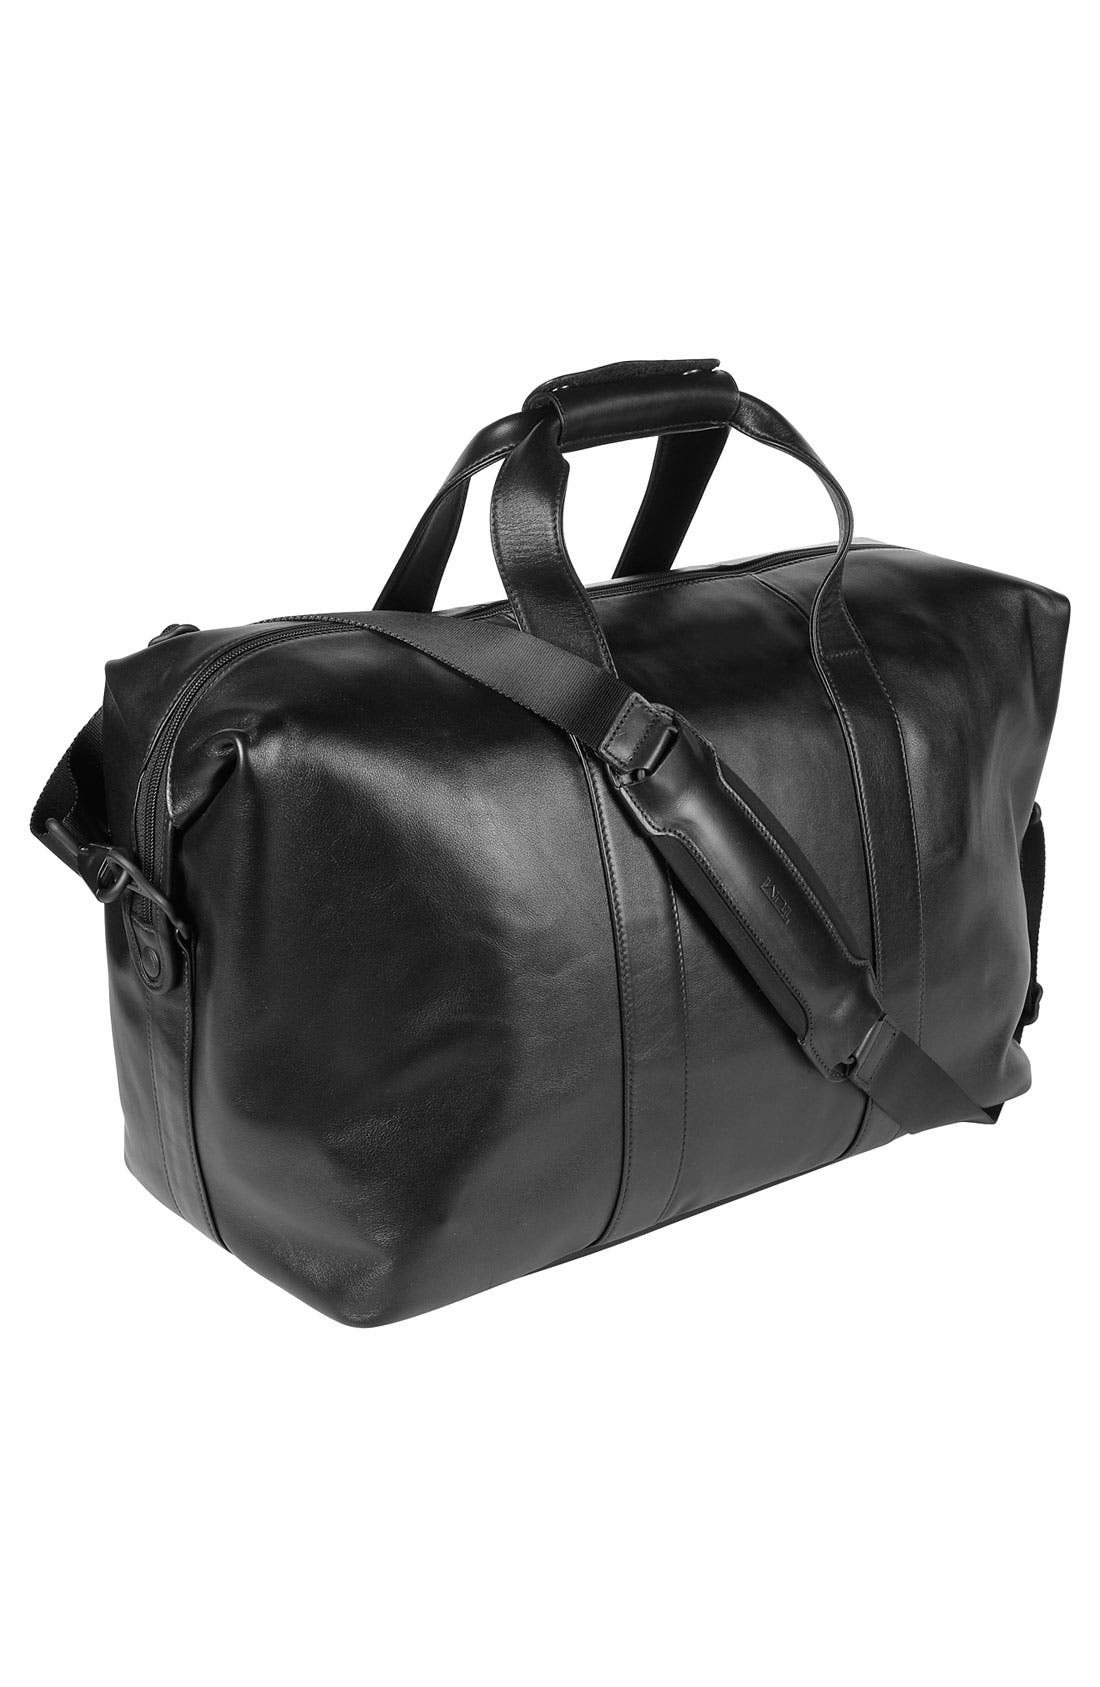 Main Image - Tumi 'Small Alpha' Soft Leather Travel Satchel